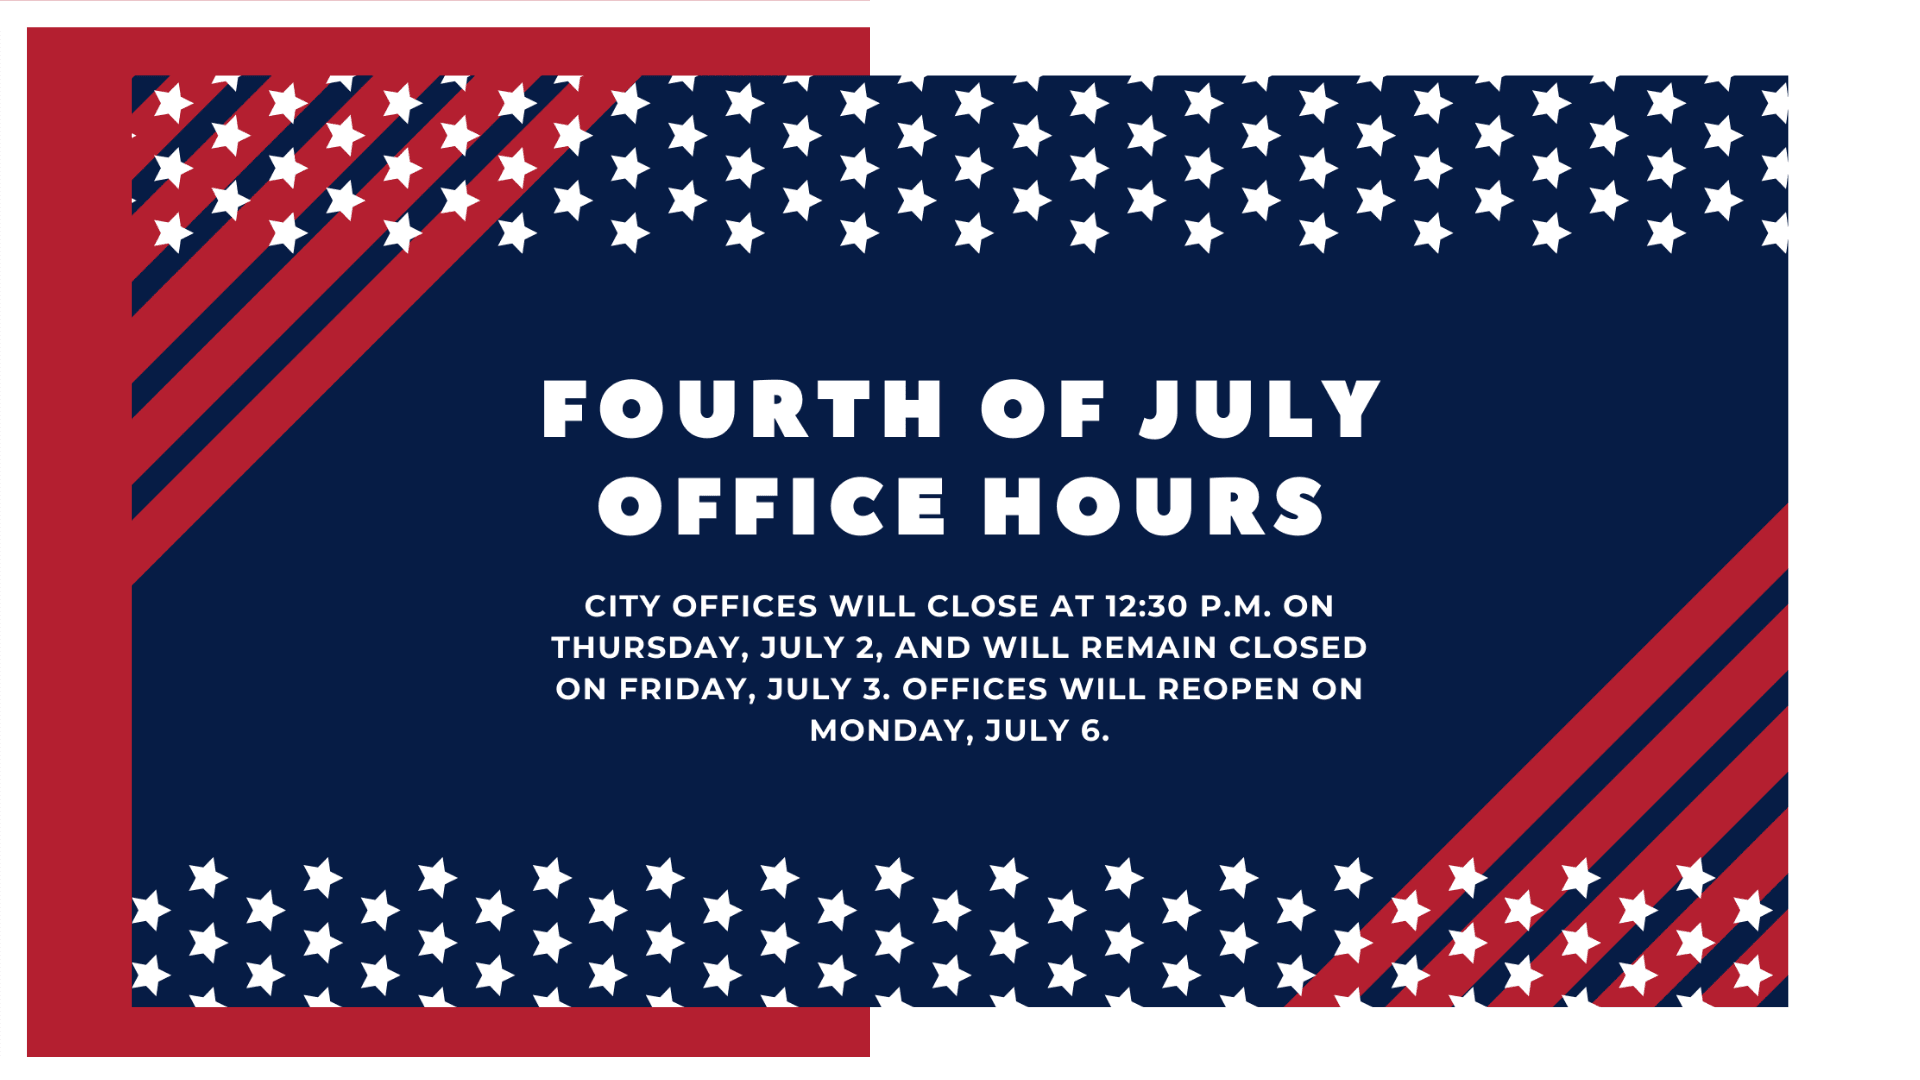 Fourth of July Office Hours